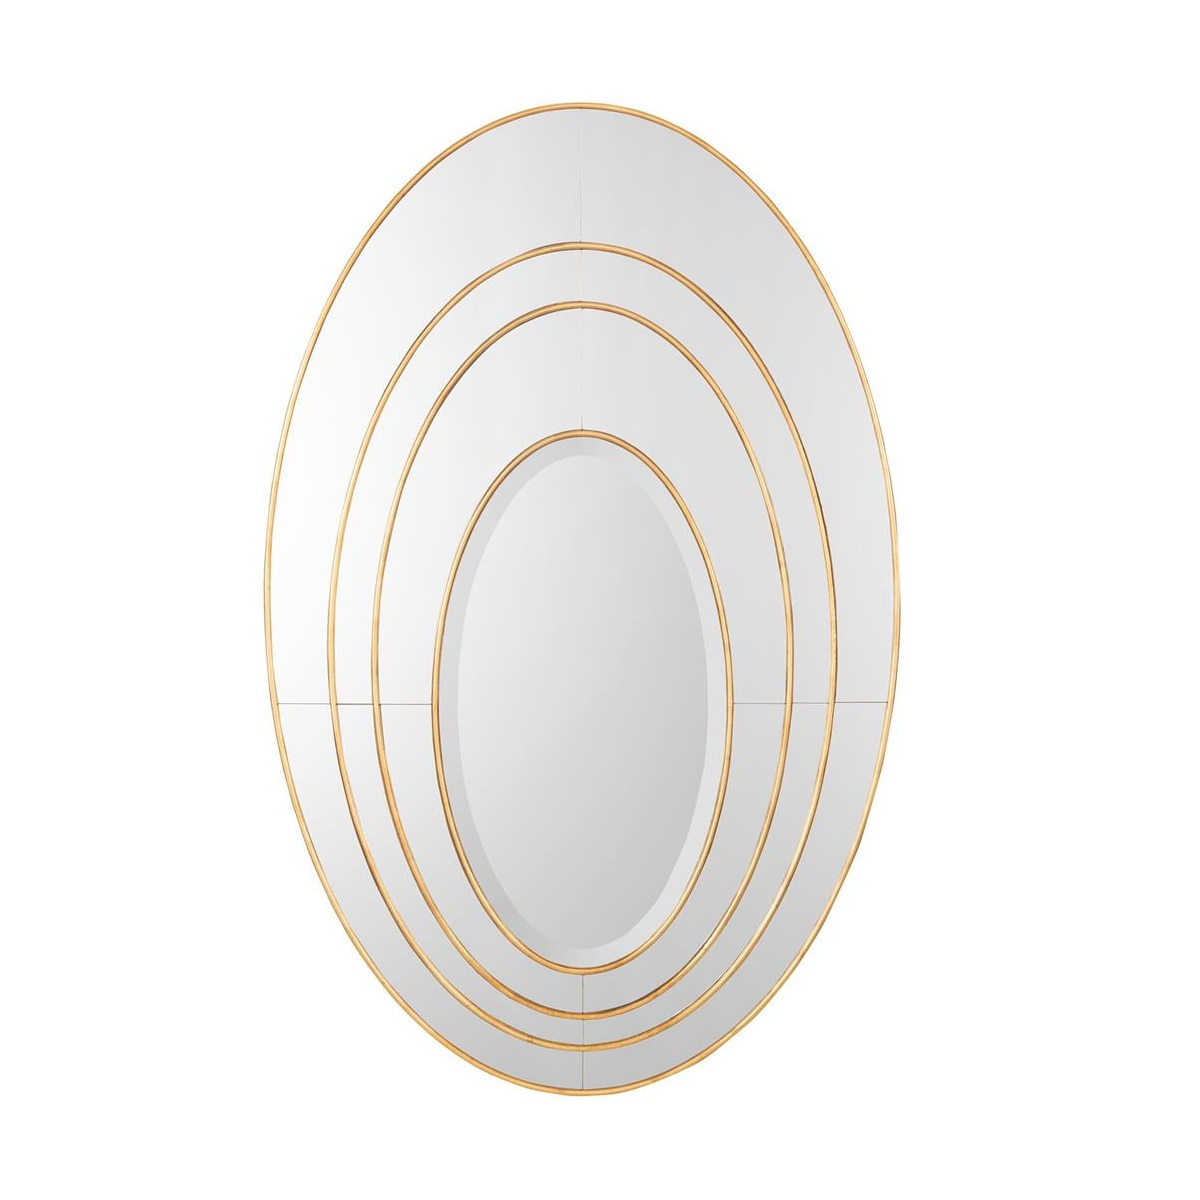 Bartolo Mirror, John Richard Mirror, Brooklyn, New York, Furniture by ABD